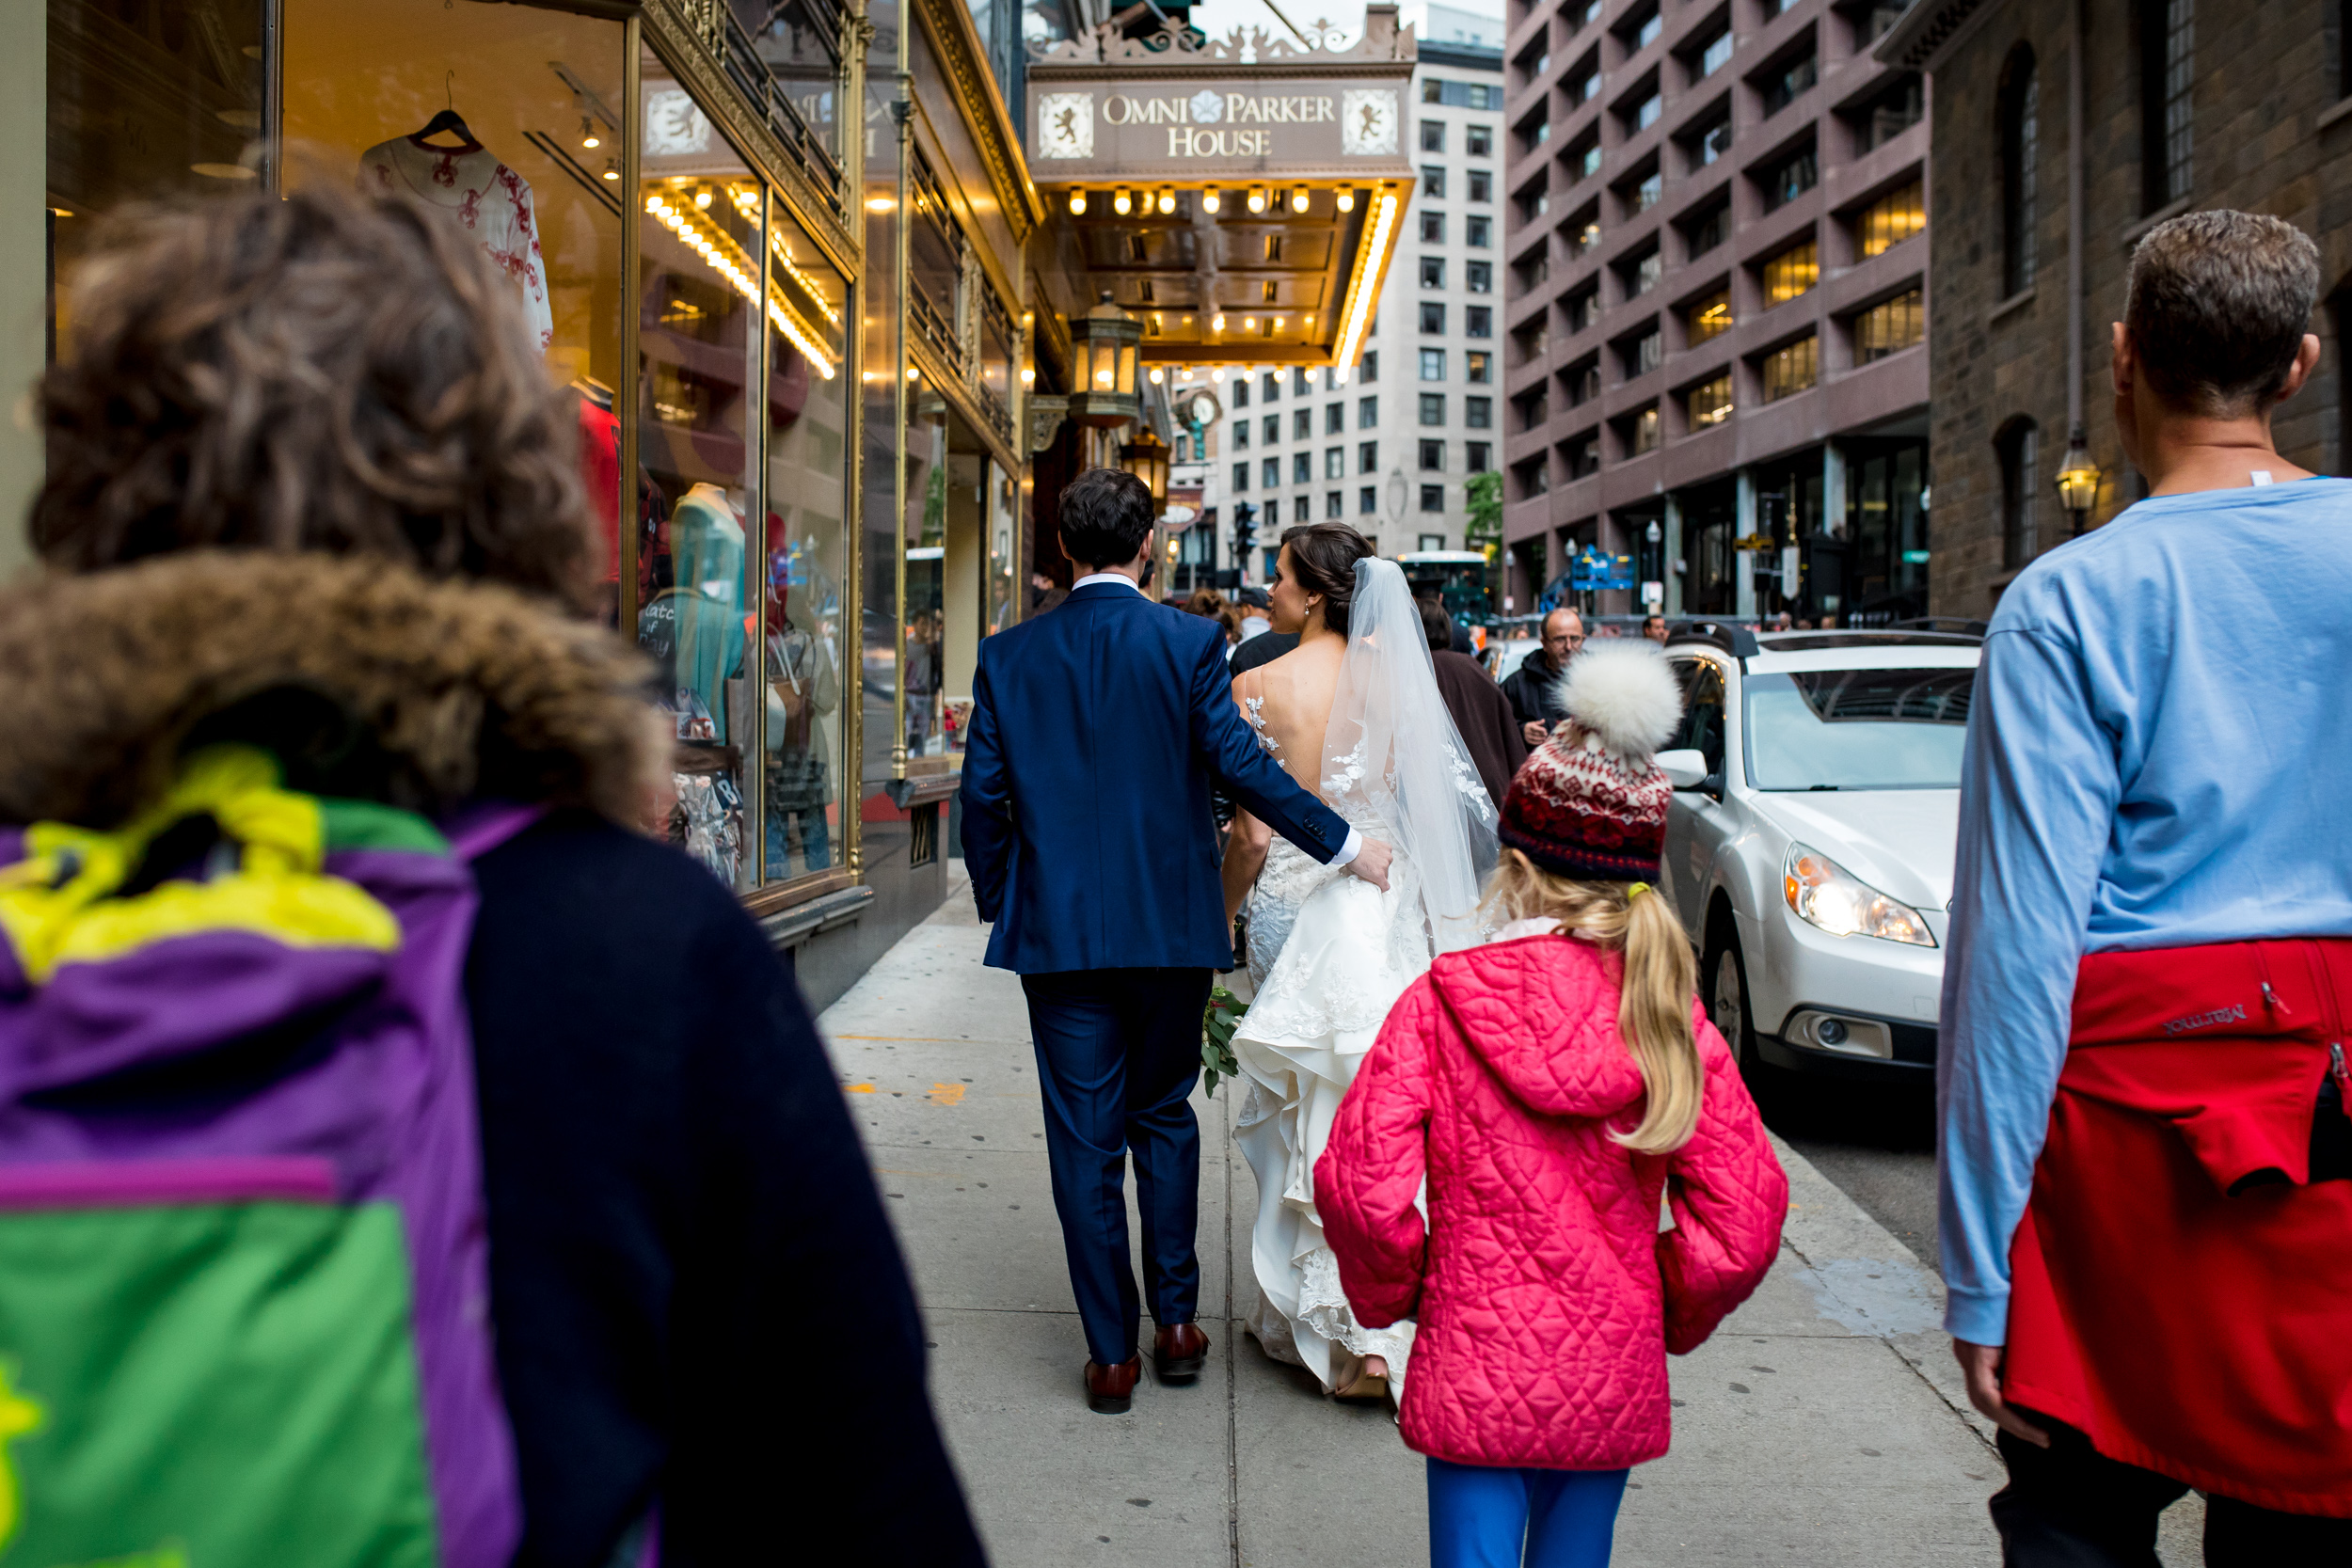 redwood and rye_omni parker house wedding photography_boston wedding photographer-66.jpg